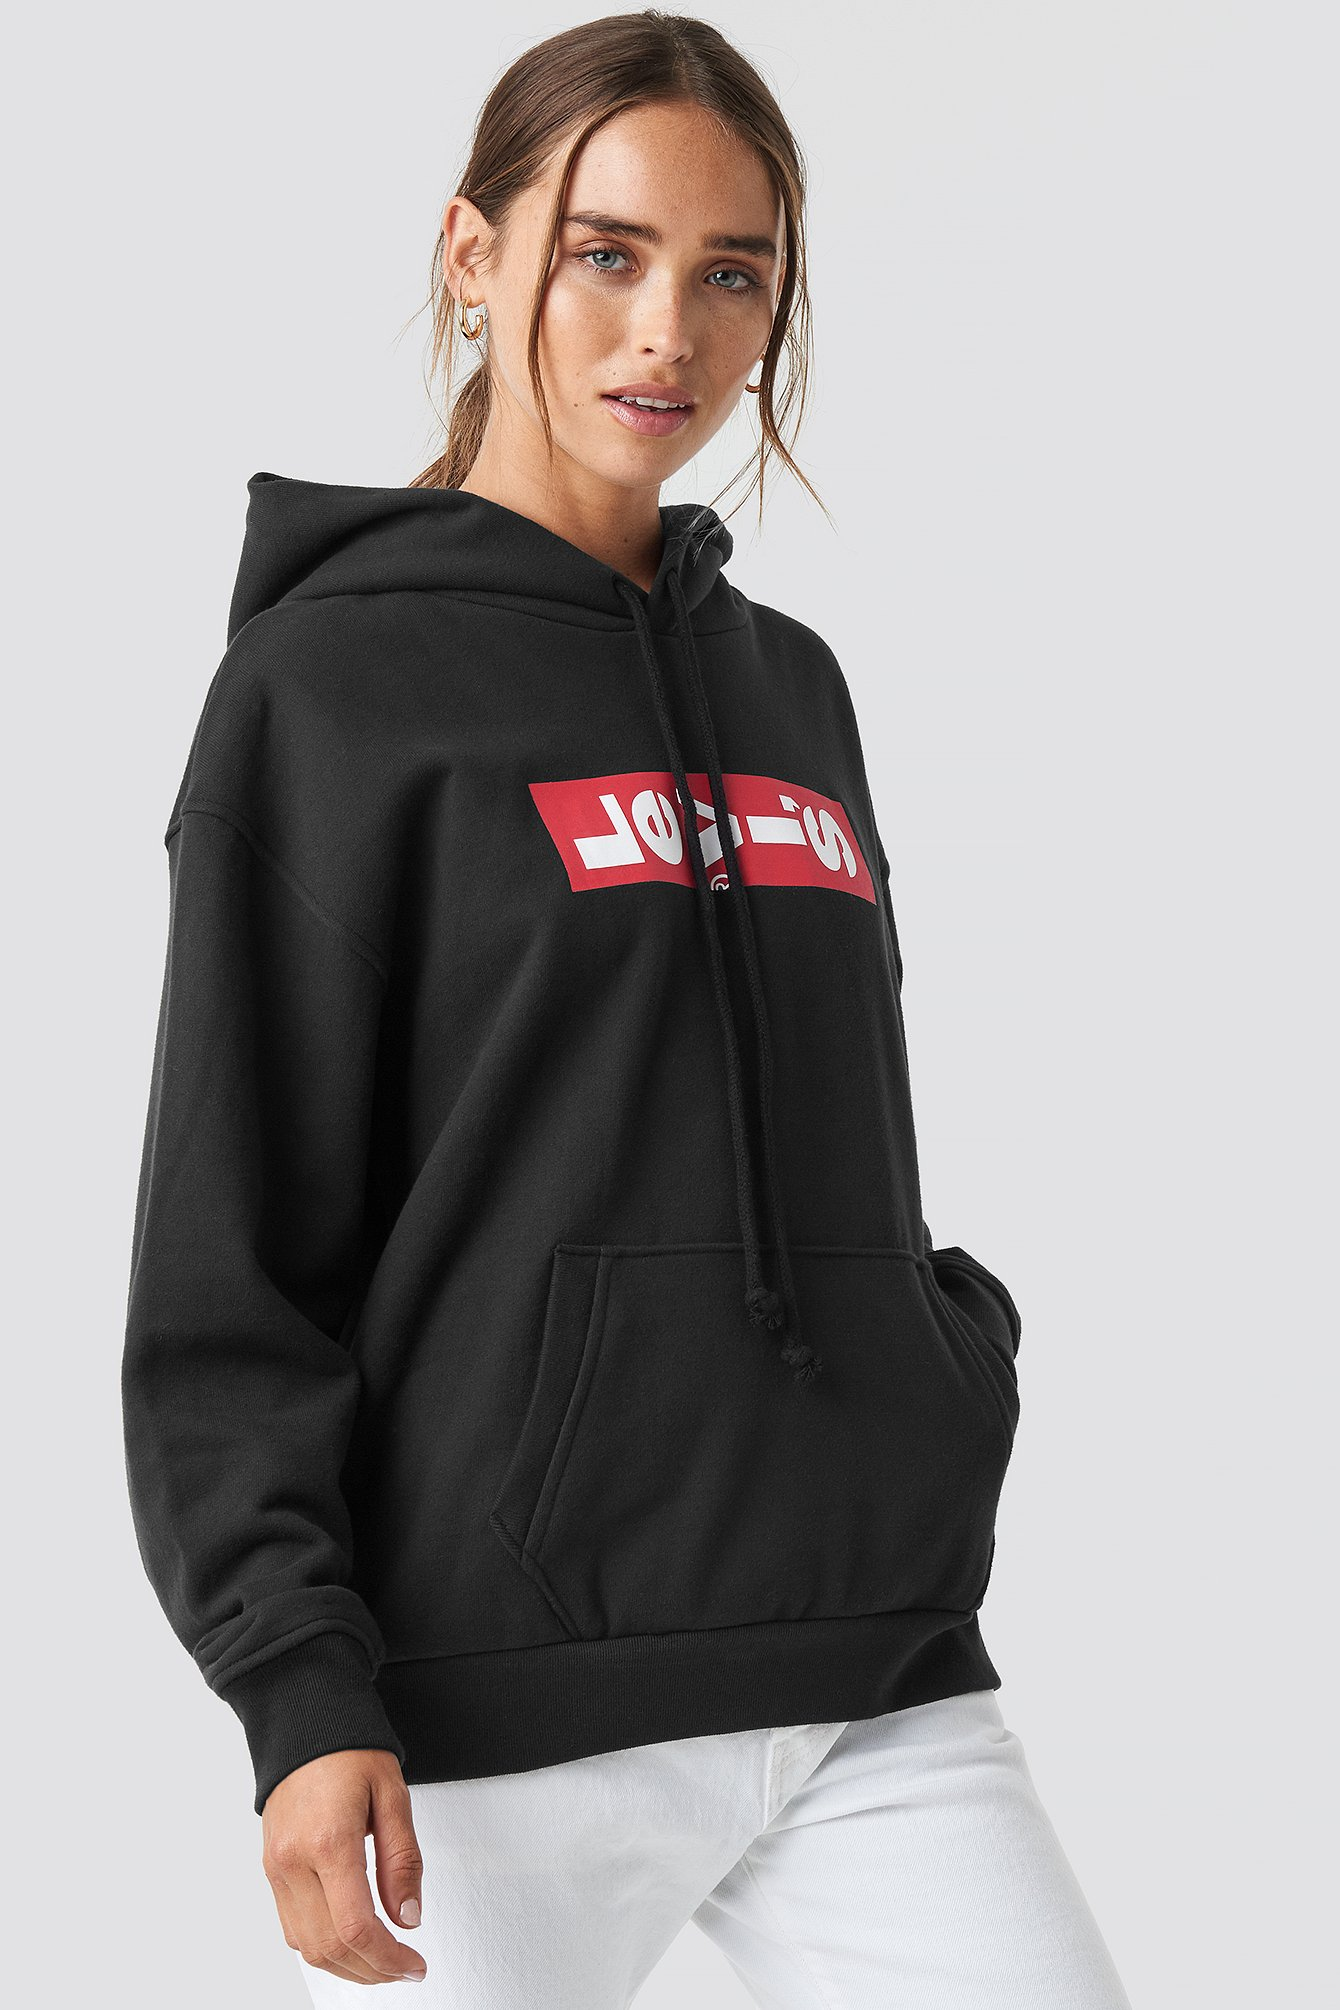 levi's -  Graphic Unbasic Hoodie - Black